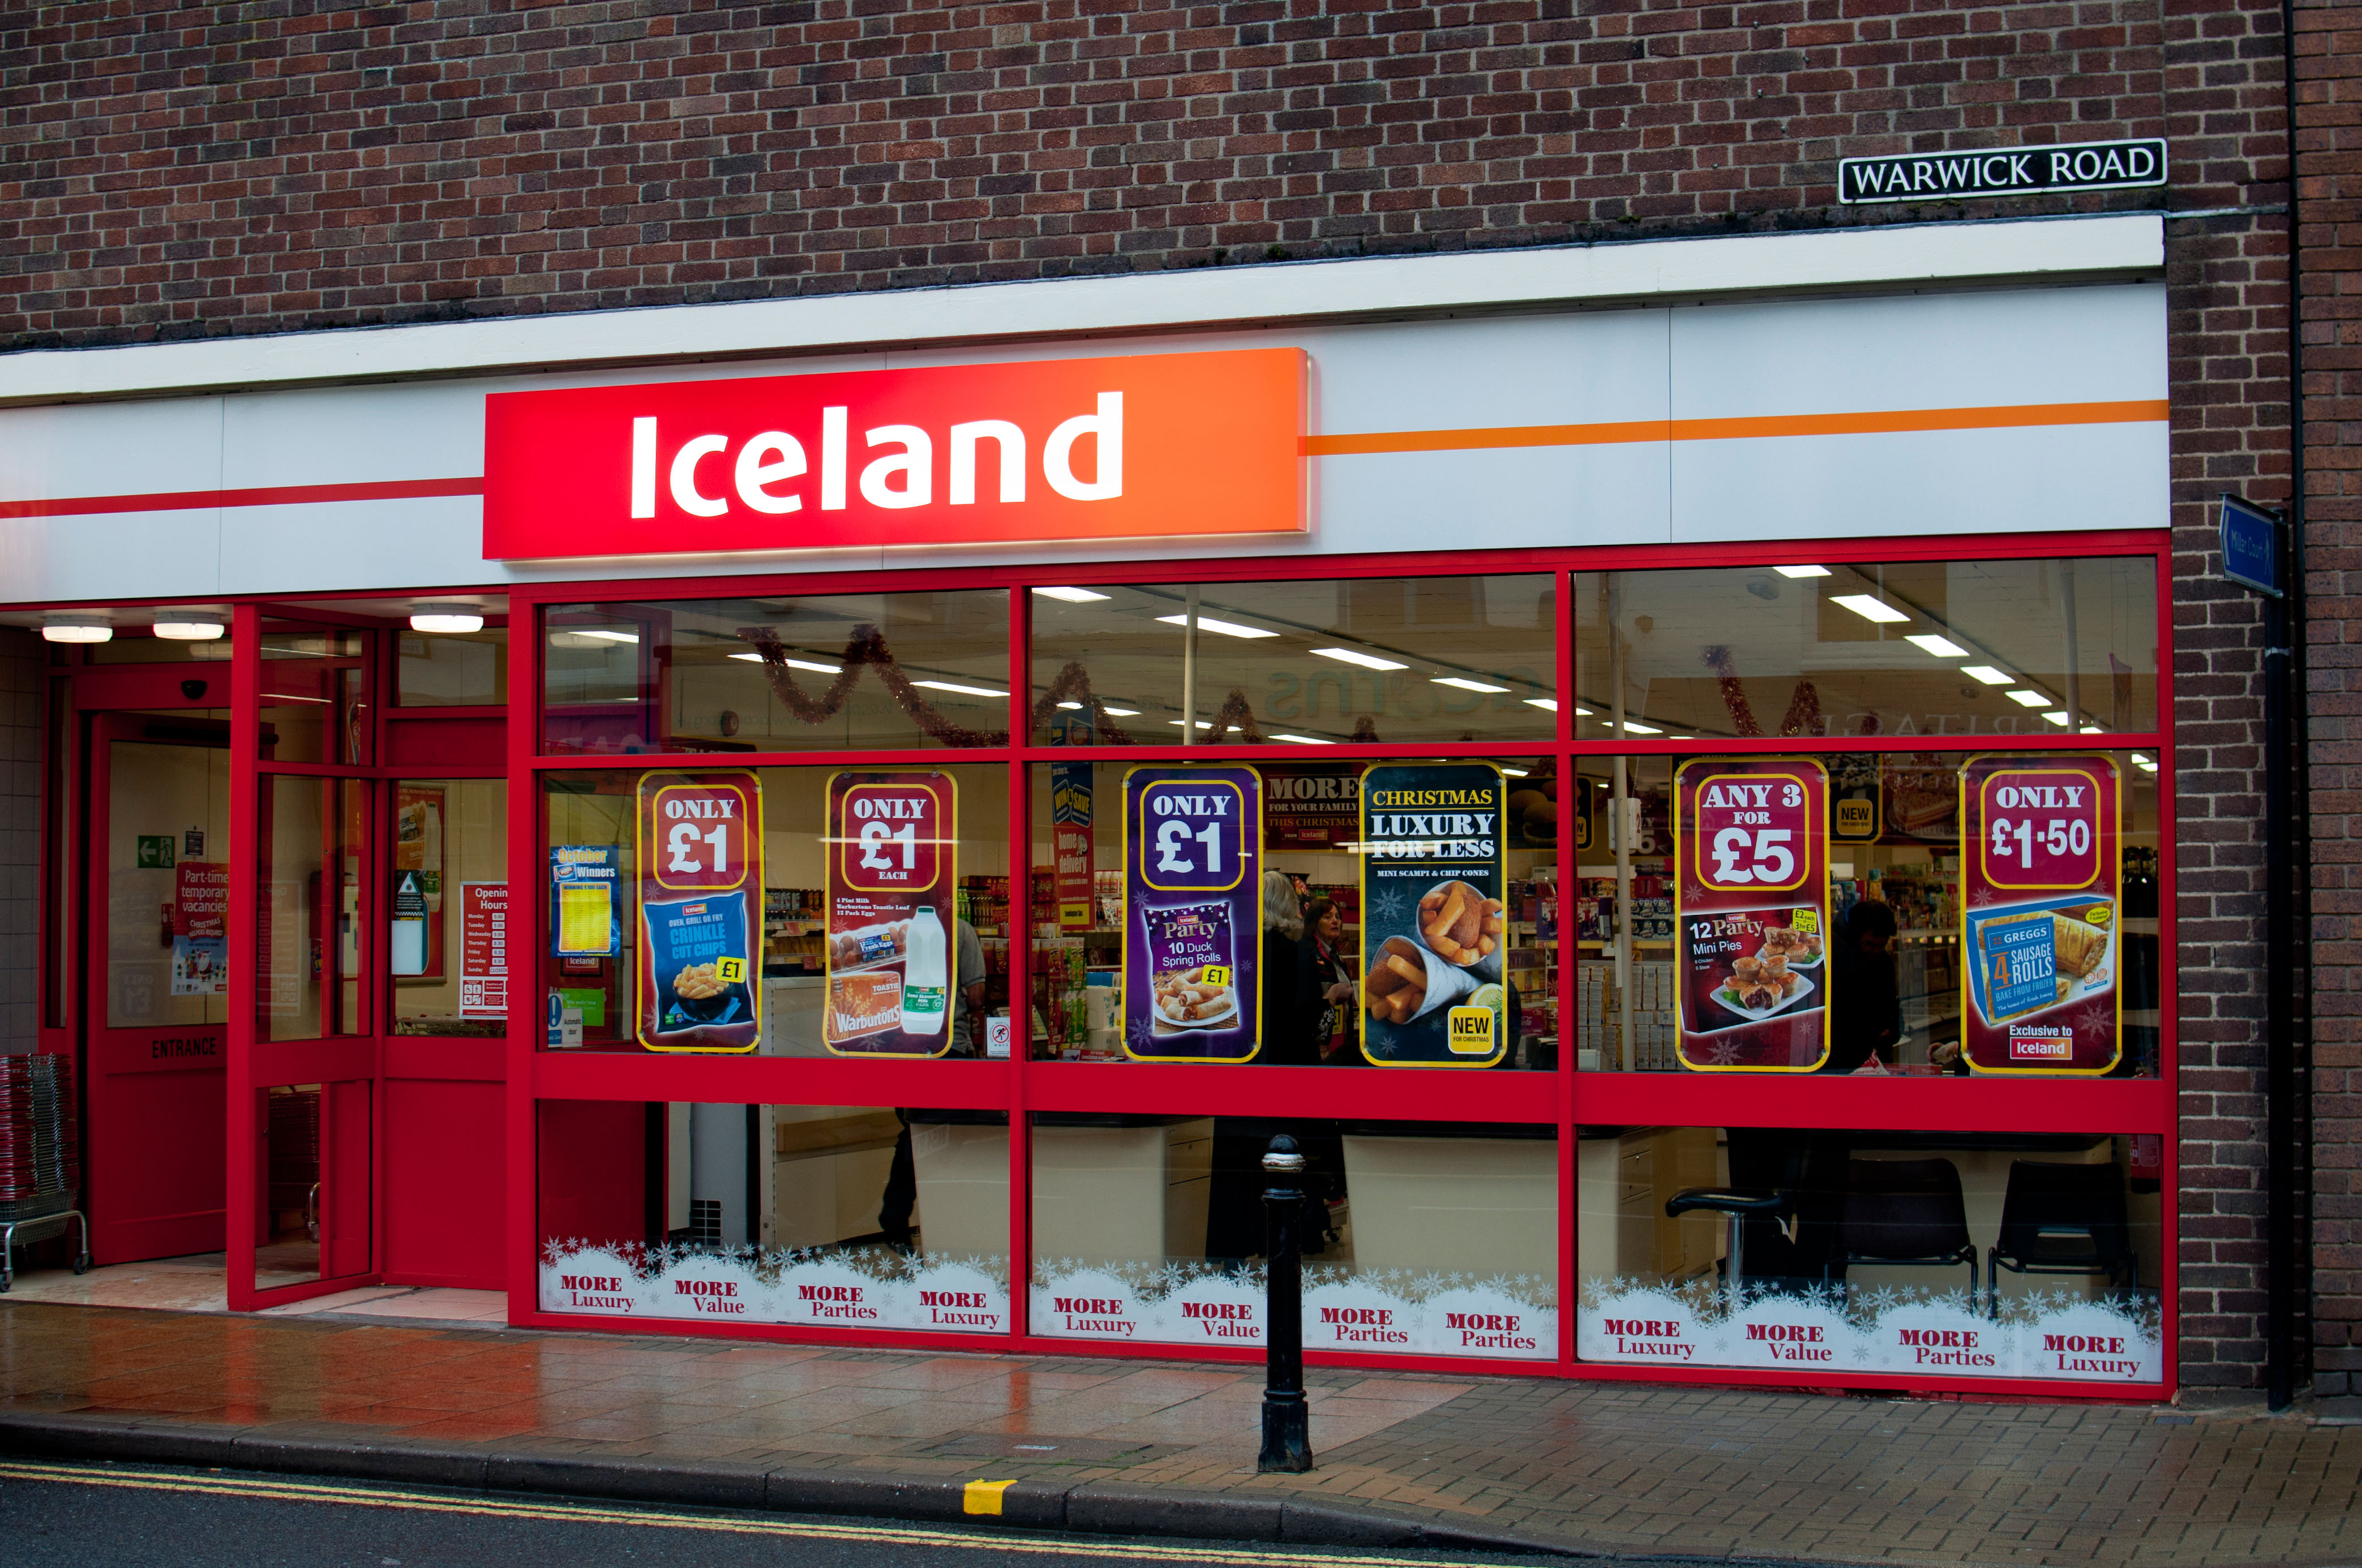 Check with your local Iceland